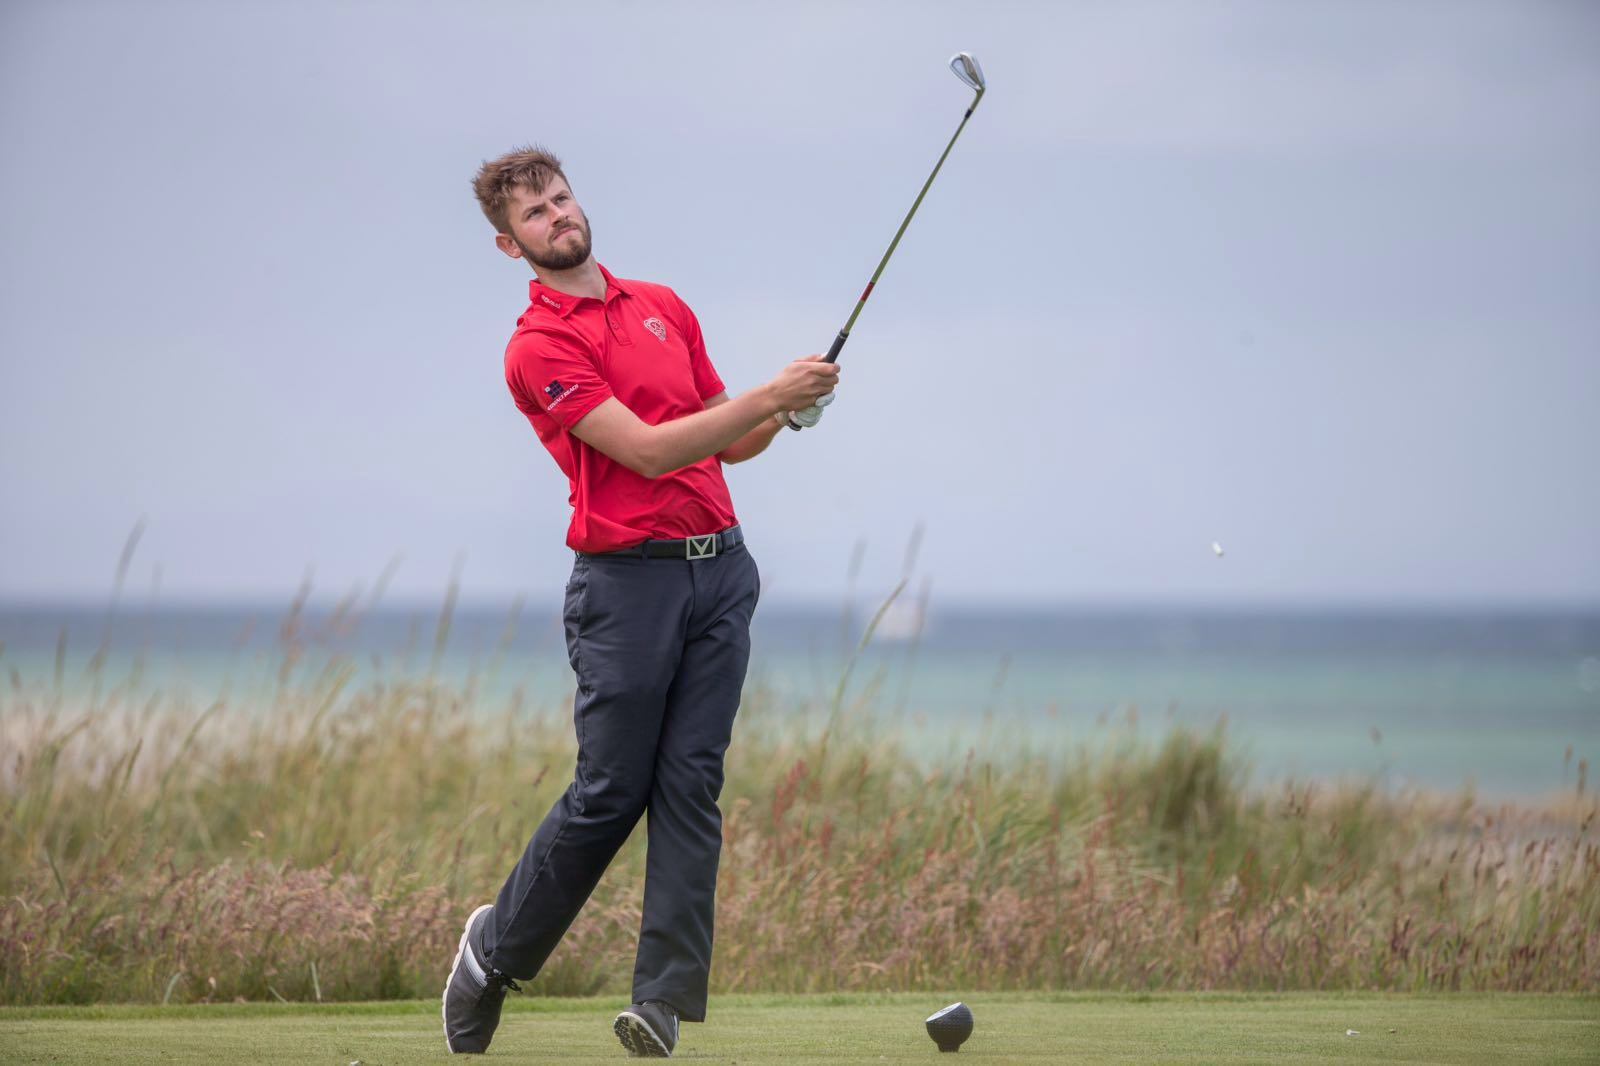 Henry up to 14th in the EuroPro rankings